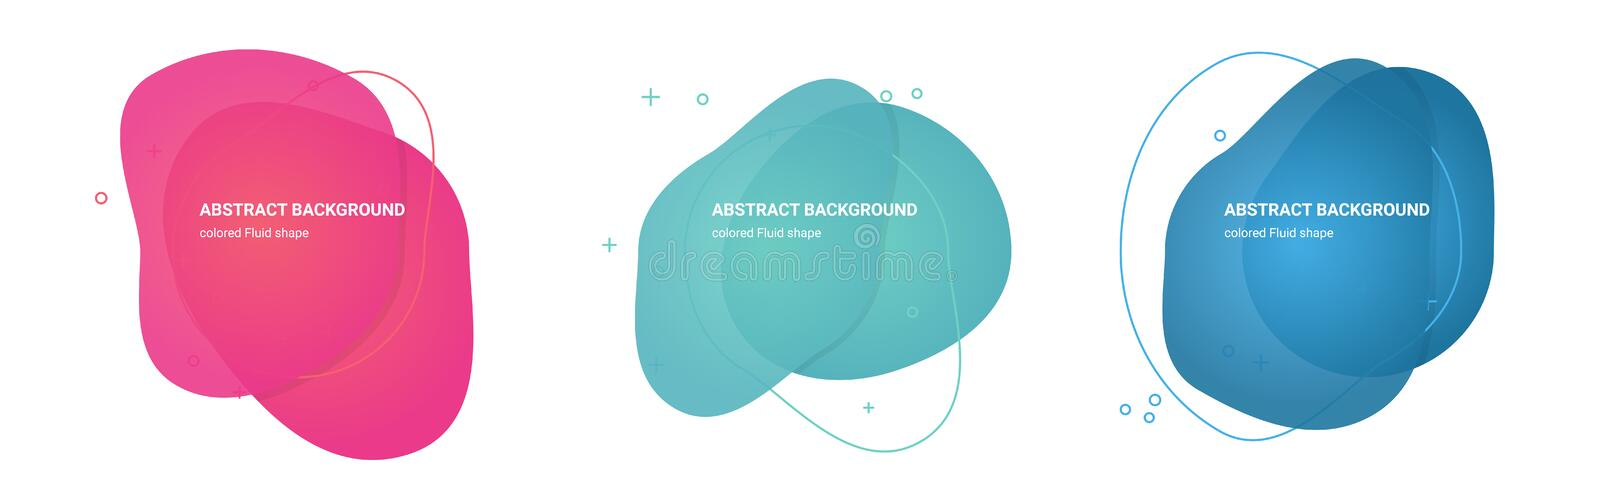 Abstract Fluid shapes Multicolored Gradients Backgrounds for Business Cards vector illustration